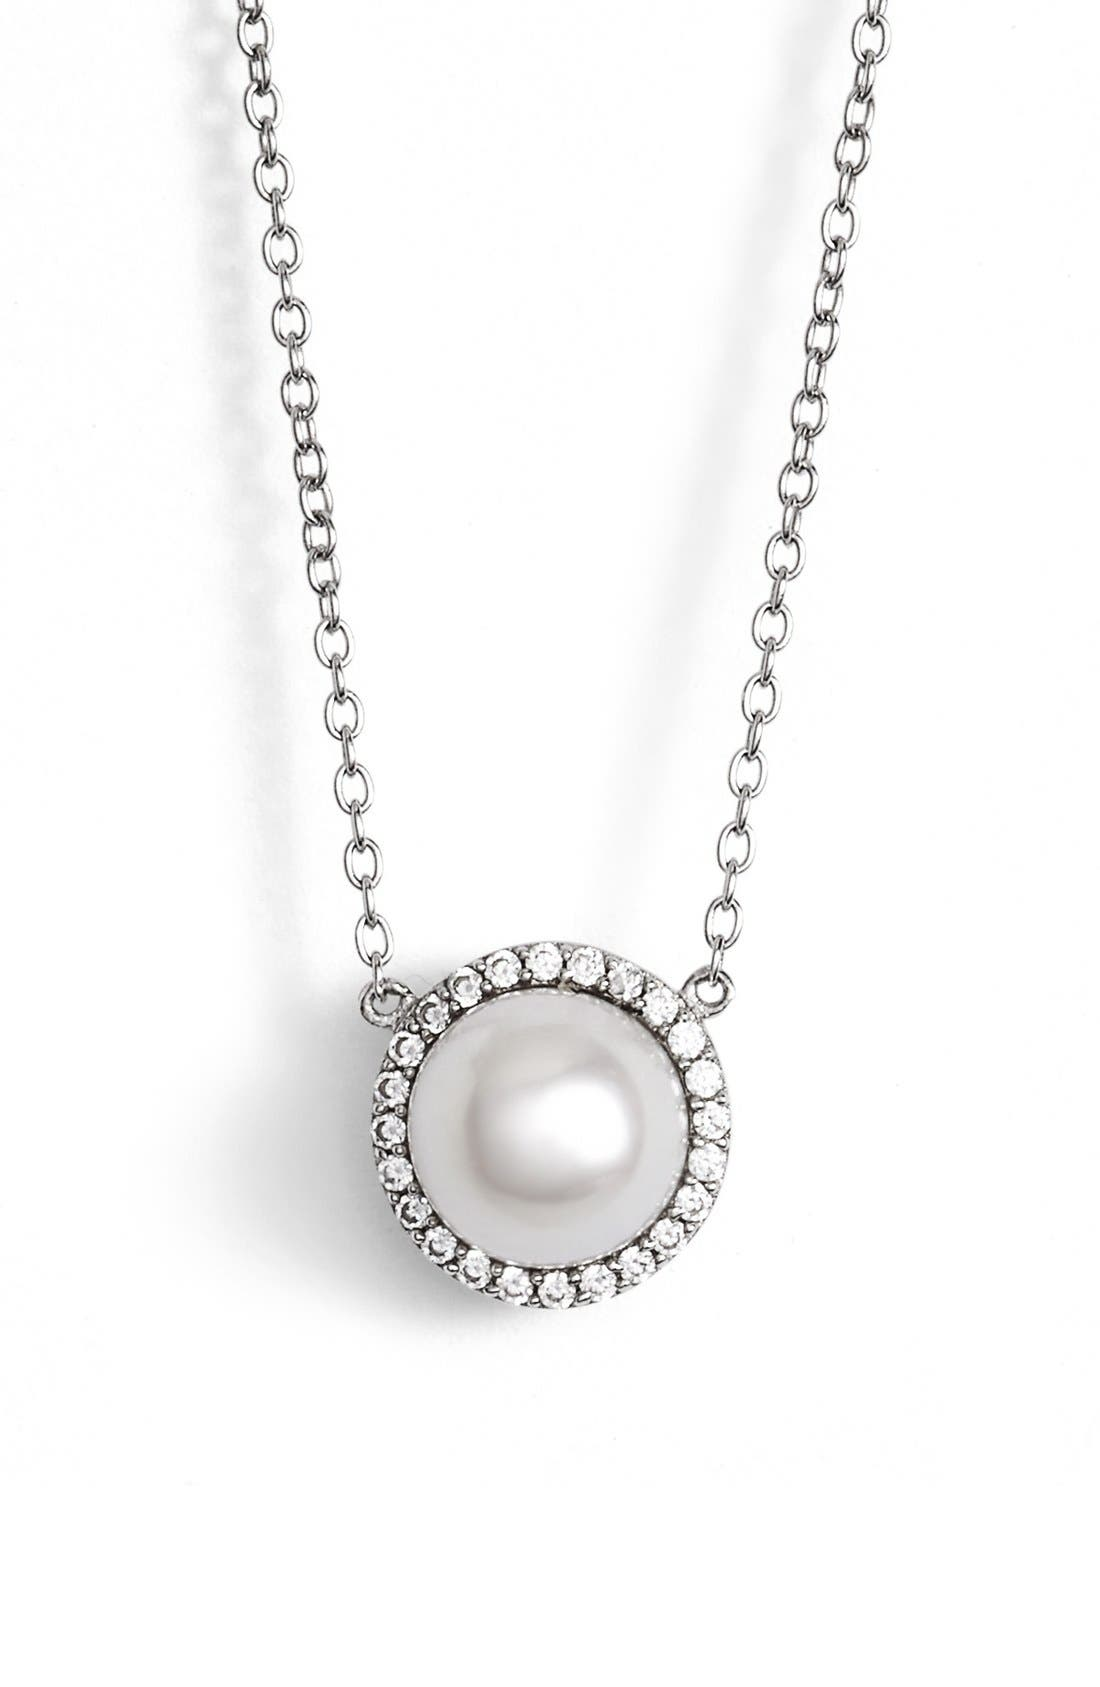 'Lassaire' Pearl Pendant Necklace,                             Main thumbnail 1, color,                             SILVER/ CLEAR